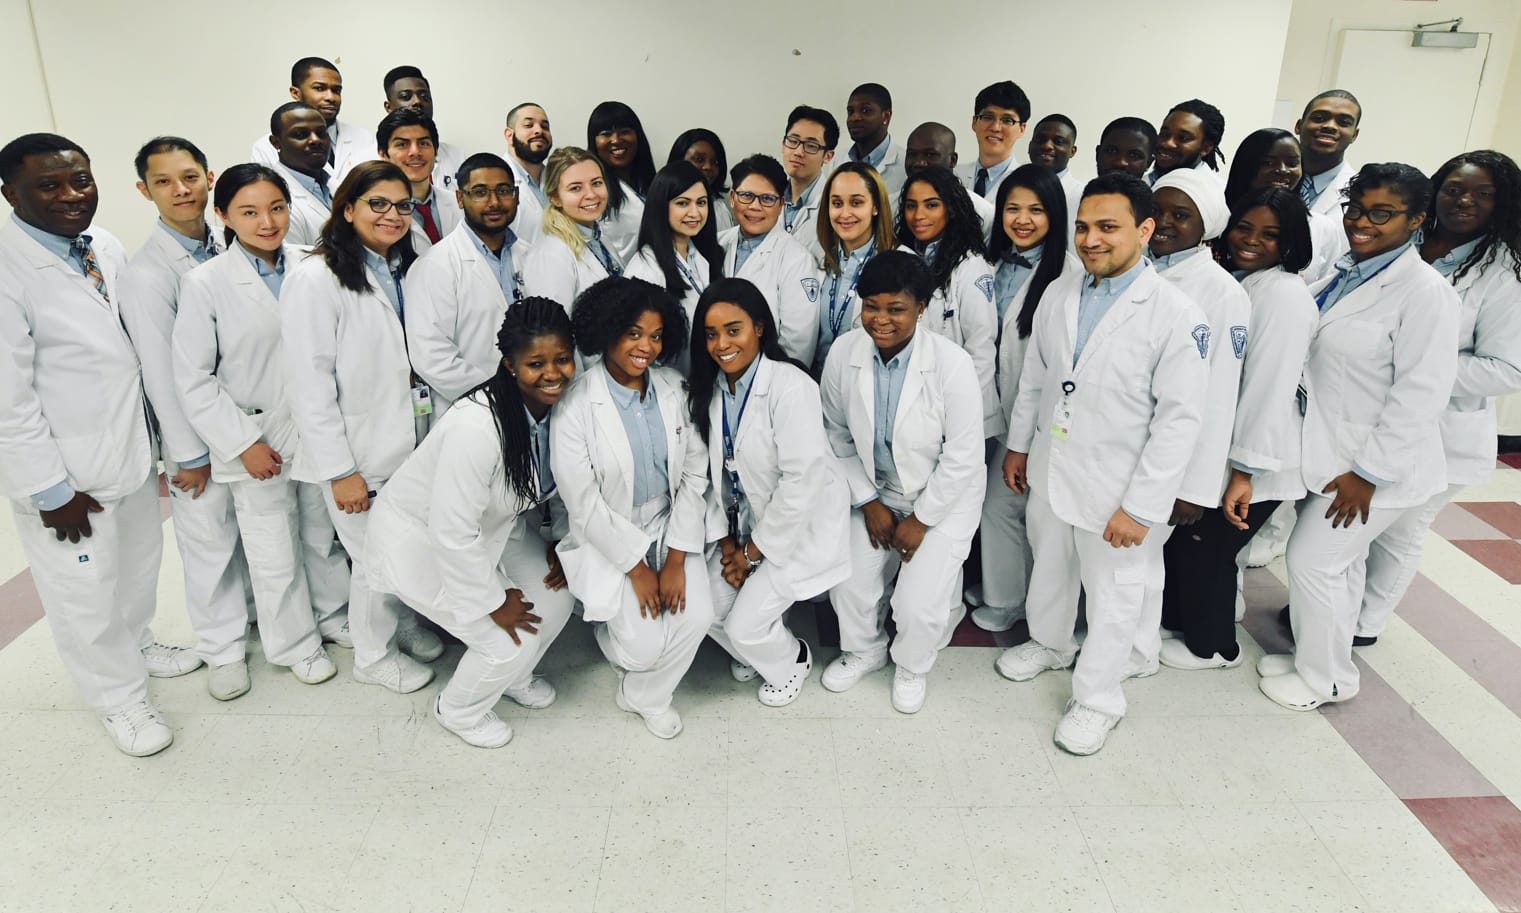 Medical imaging students